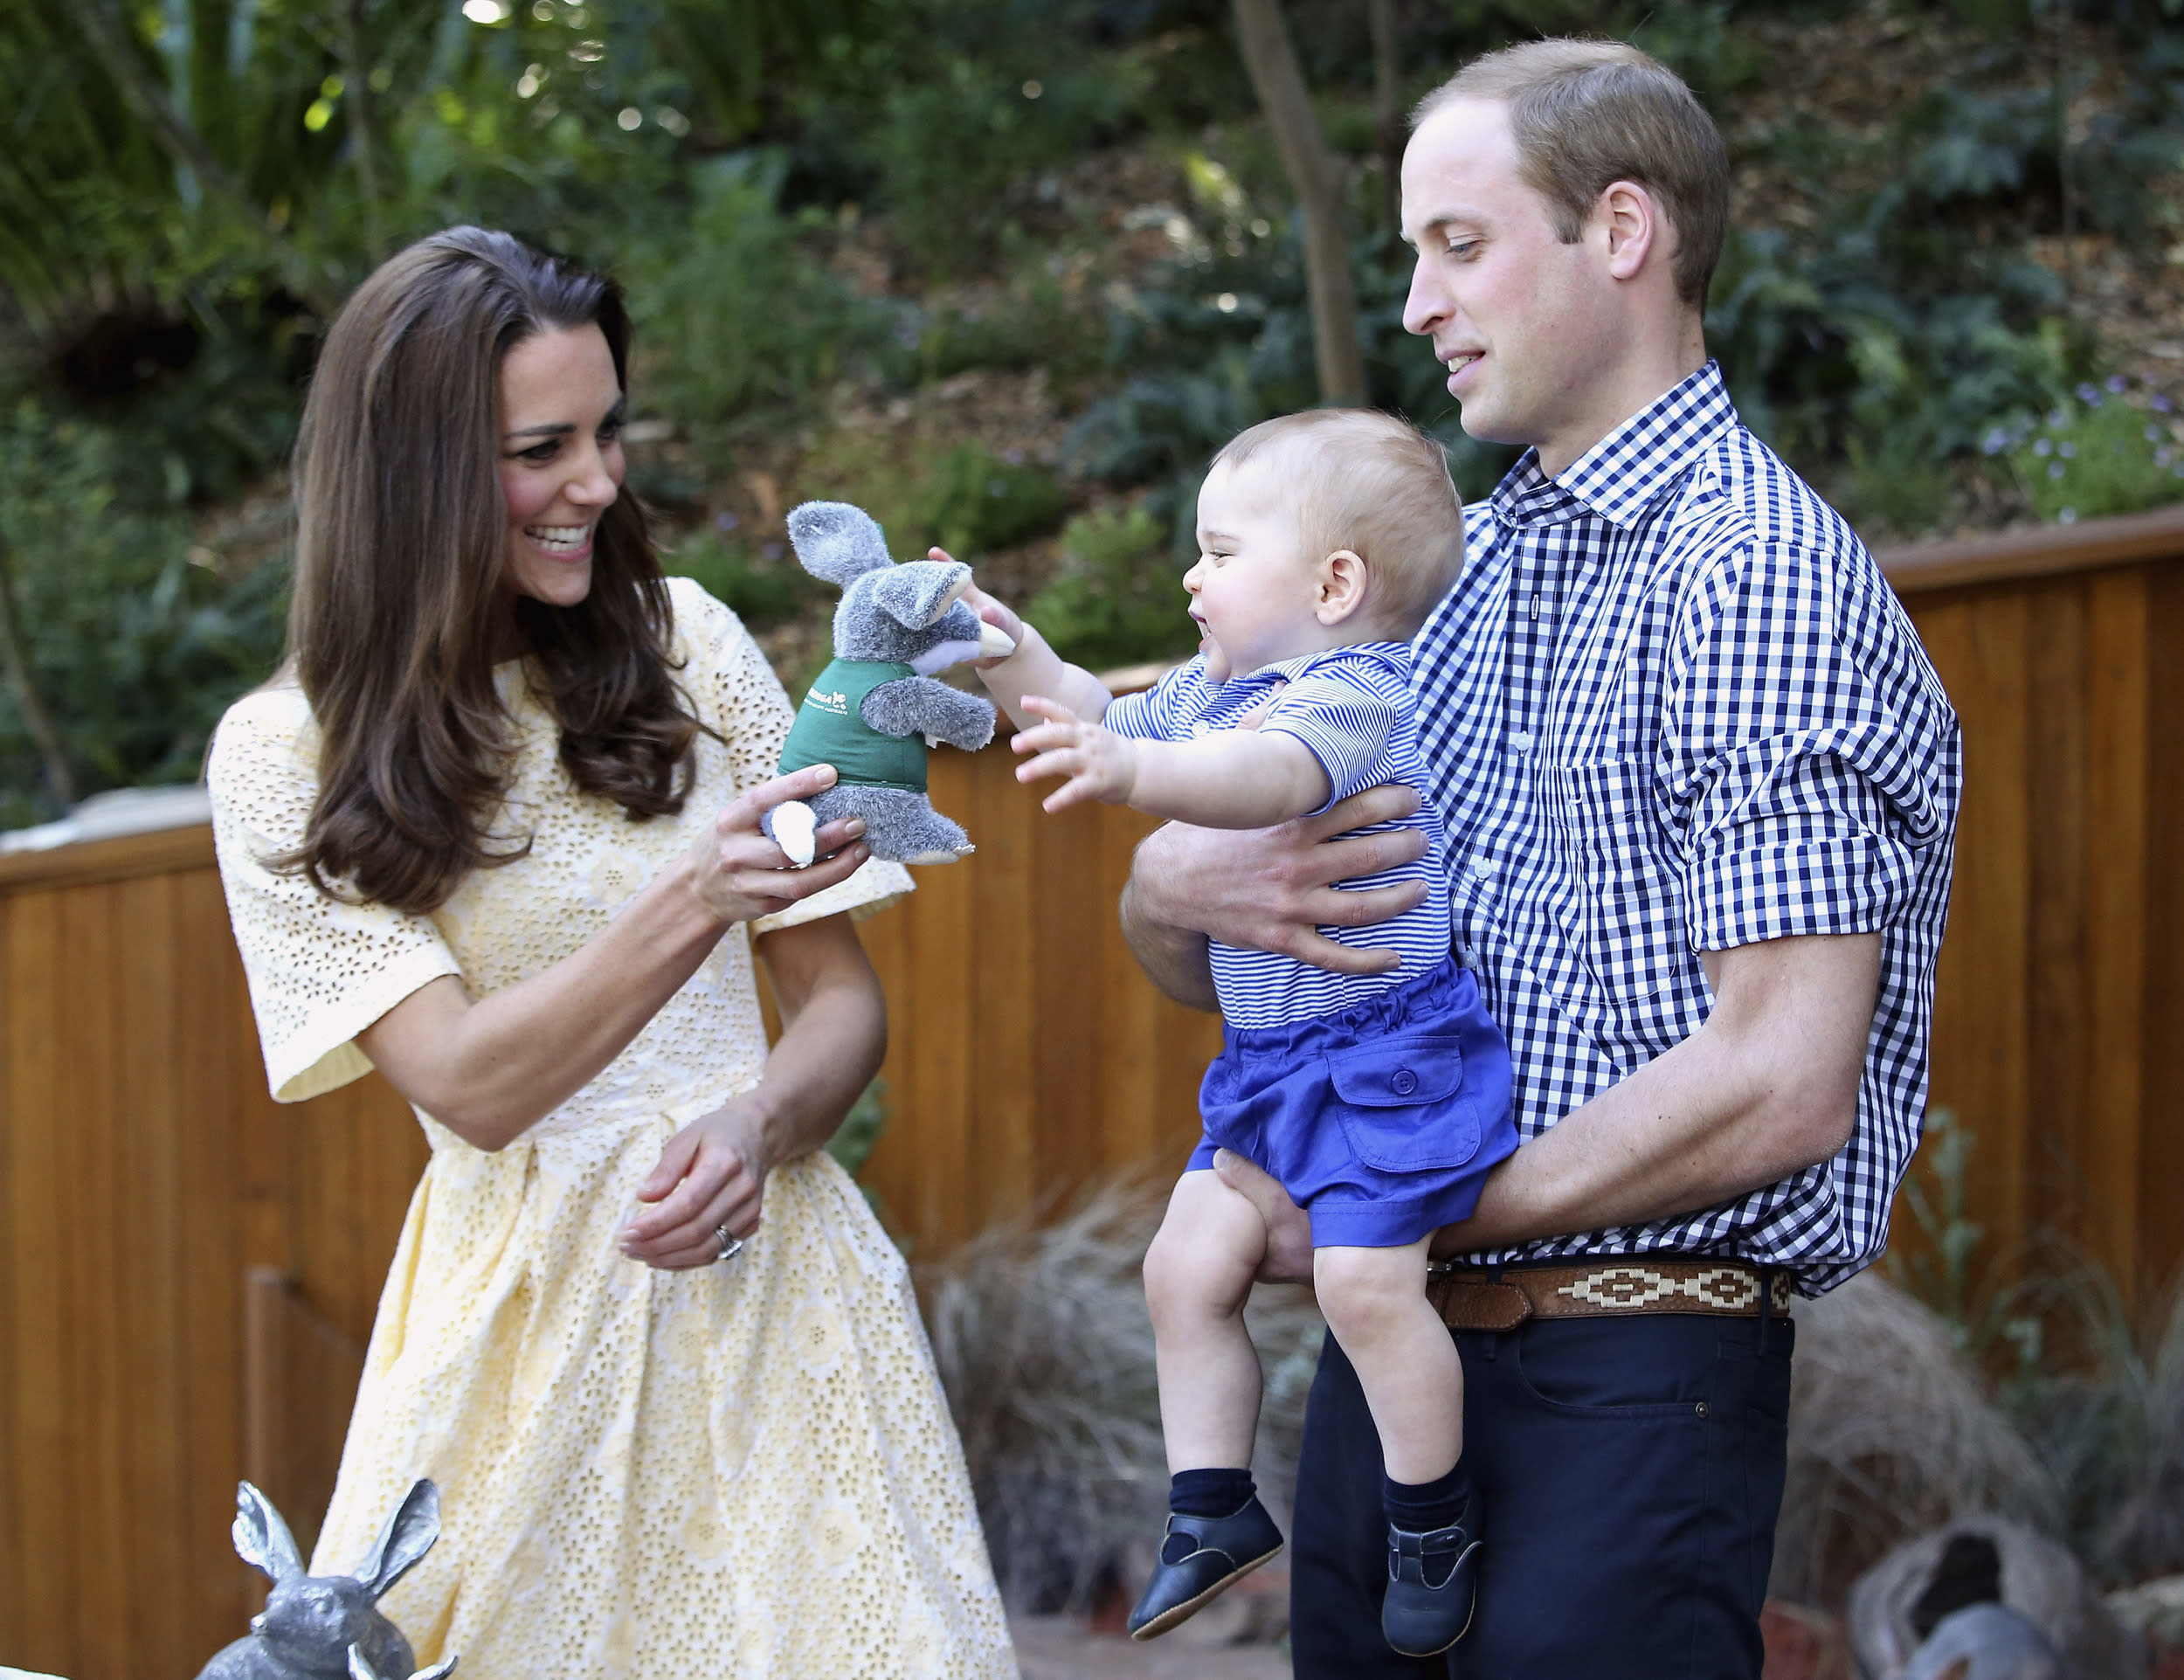 Prince William holds Prince George as Catherine, Duchess of Cambridge, gives him a toy during a visit to the Bilby Enclosure at Sydney's Taronga Zoo April 20, 2014. The Prince and his wife Kate are undertaking a 19-day official visit to New Zealand and Australia with their son George. REUTERS/Chris Jackson/Pool (AUSTRALIA - Tags: ENTERTAINMENT ROYALS SOCIETY)